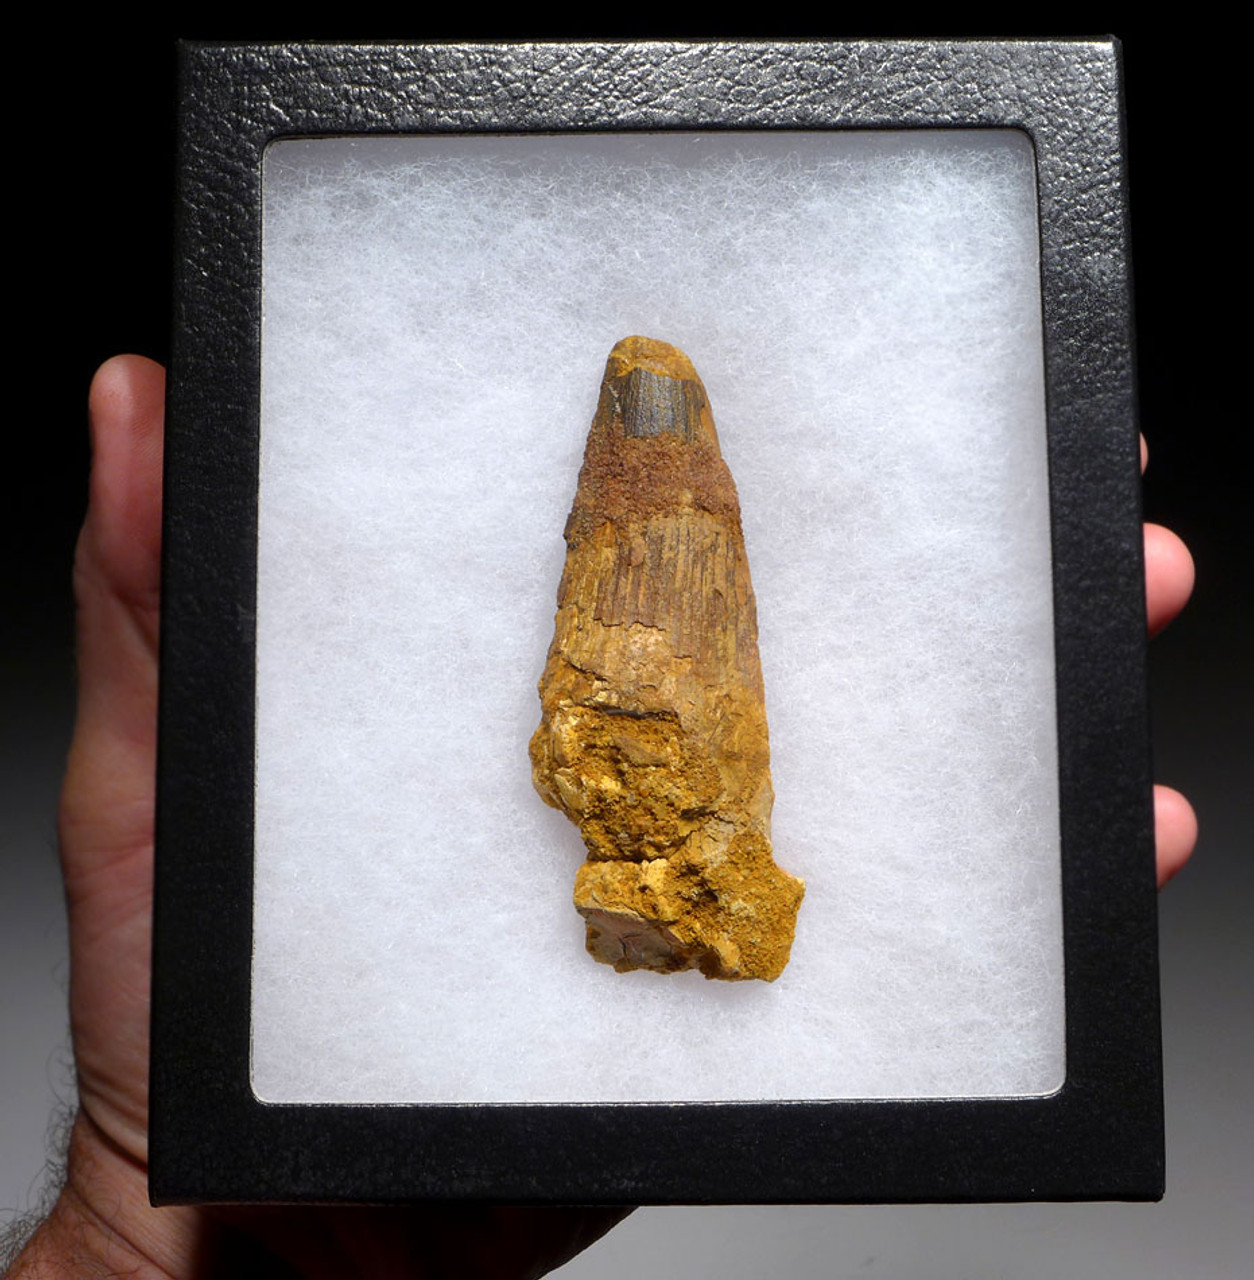 UGLY WHOPPER 3.5 INCH SPINOSAURUS DINOSAUR FOSSIL TOOTH *DT5-462